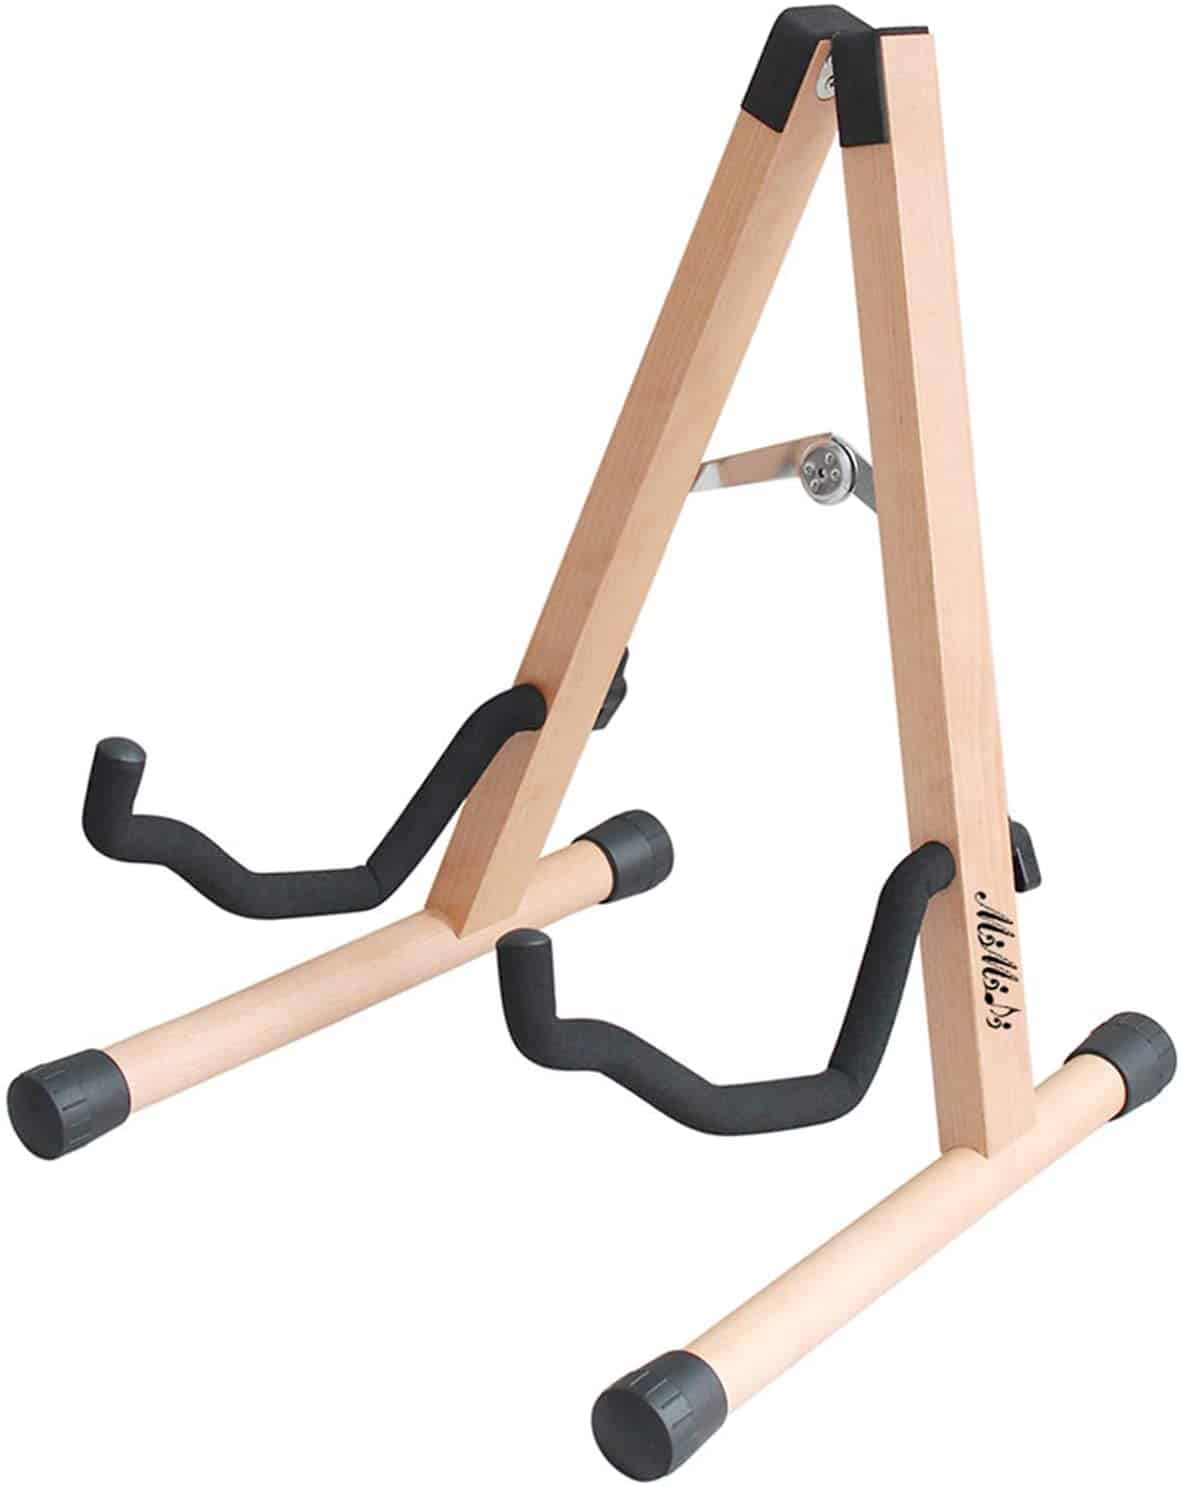 Best wooden guitar stand: MIMIDI Foldable